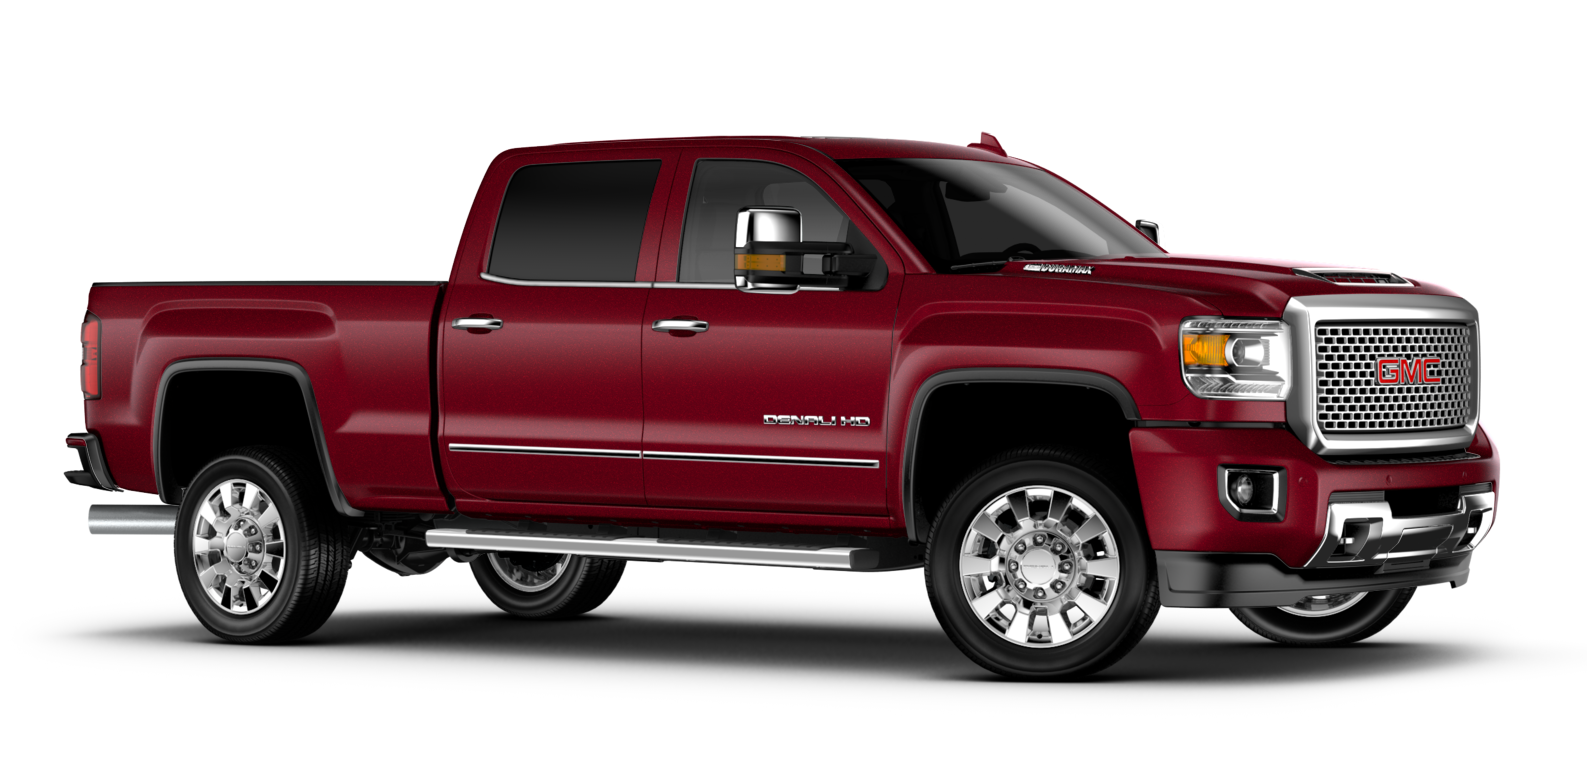 most expensive truck - sierra-2500-denali